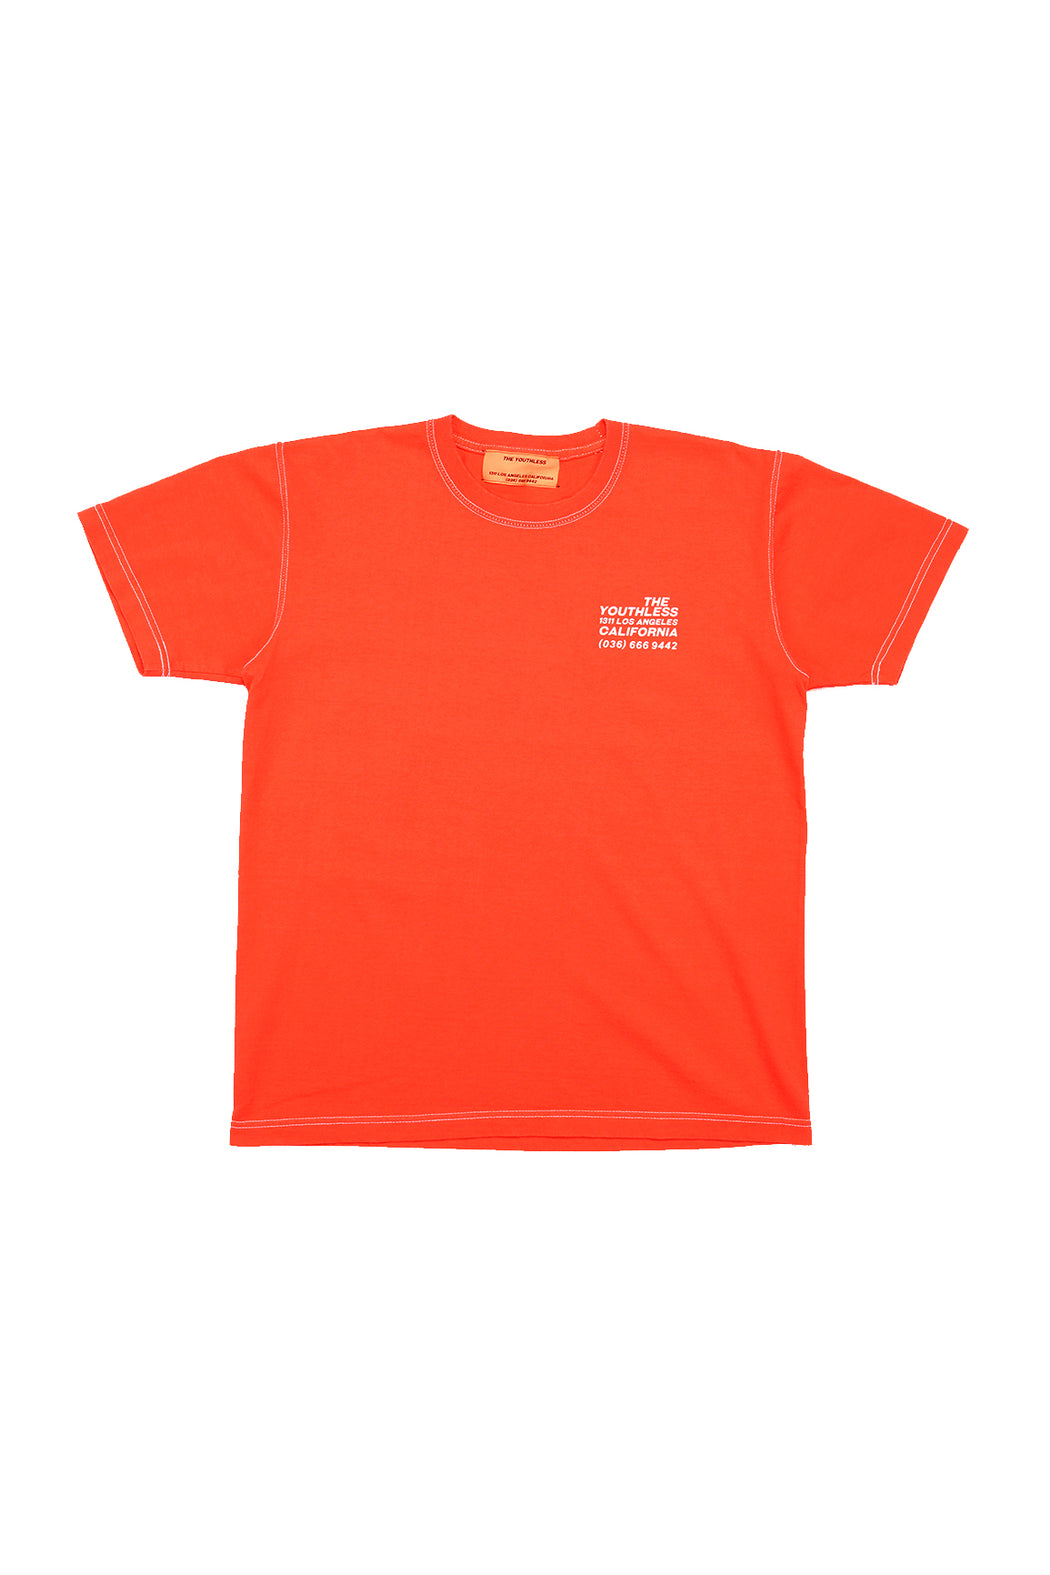 Peace Sign S/S Tee - Pink Orange